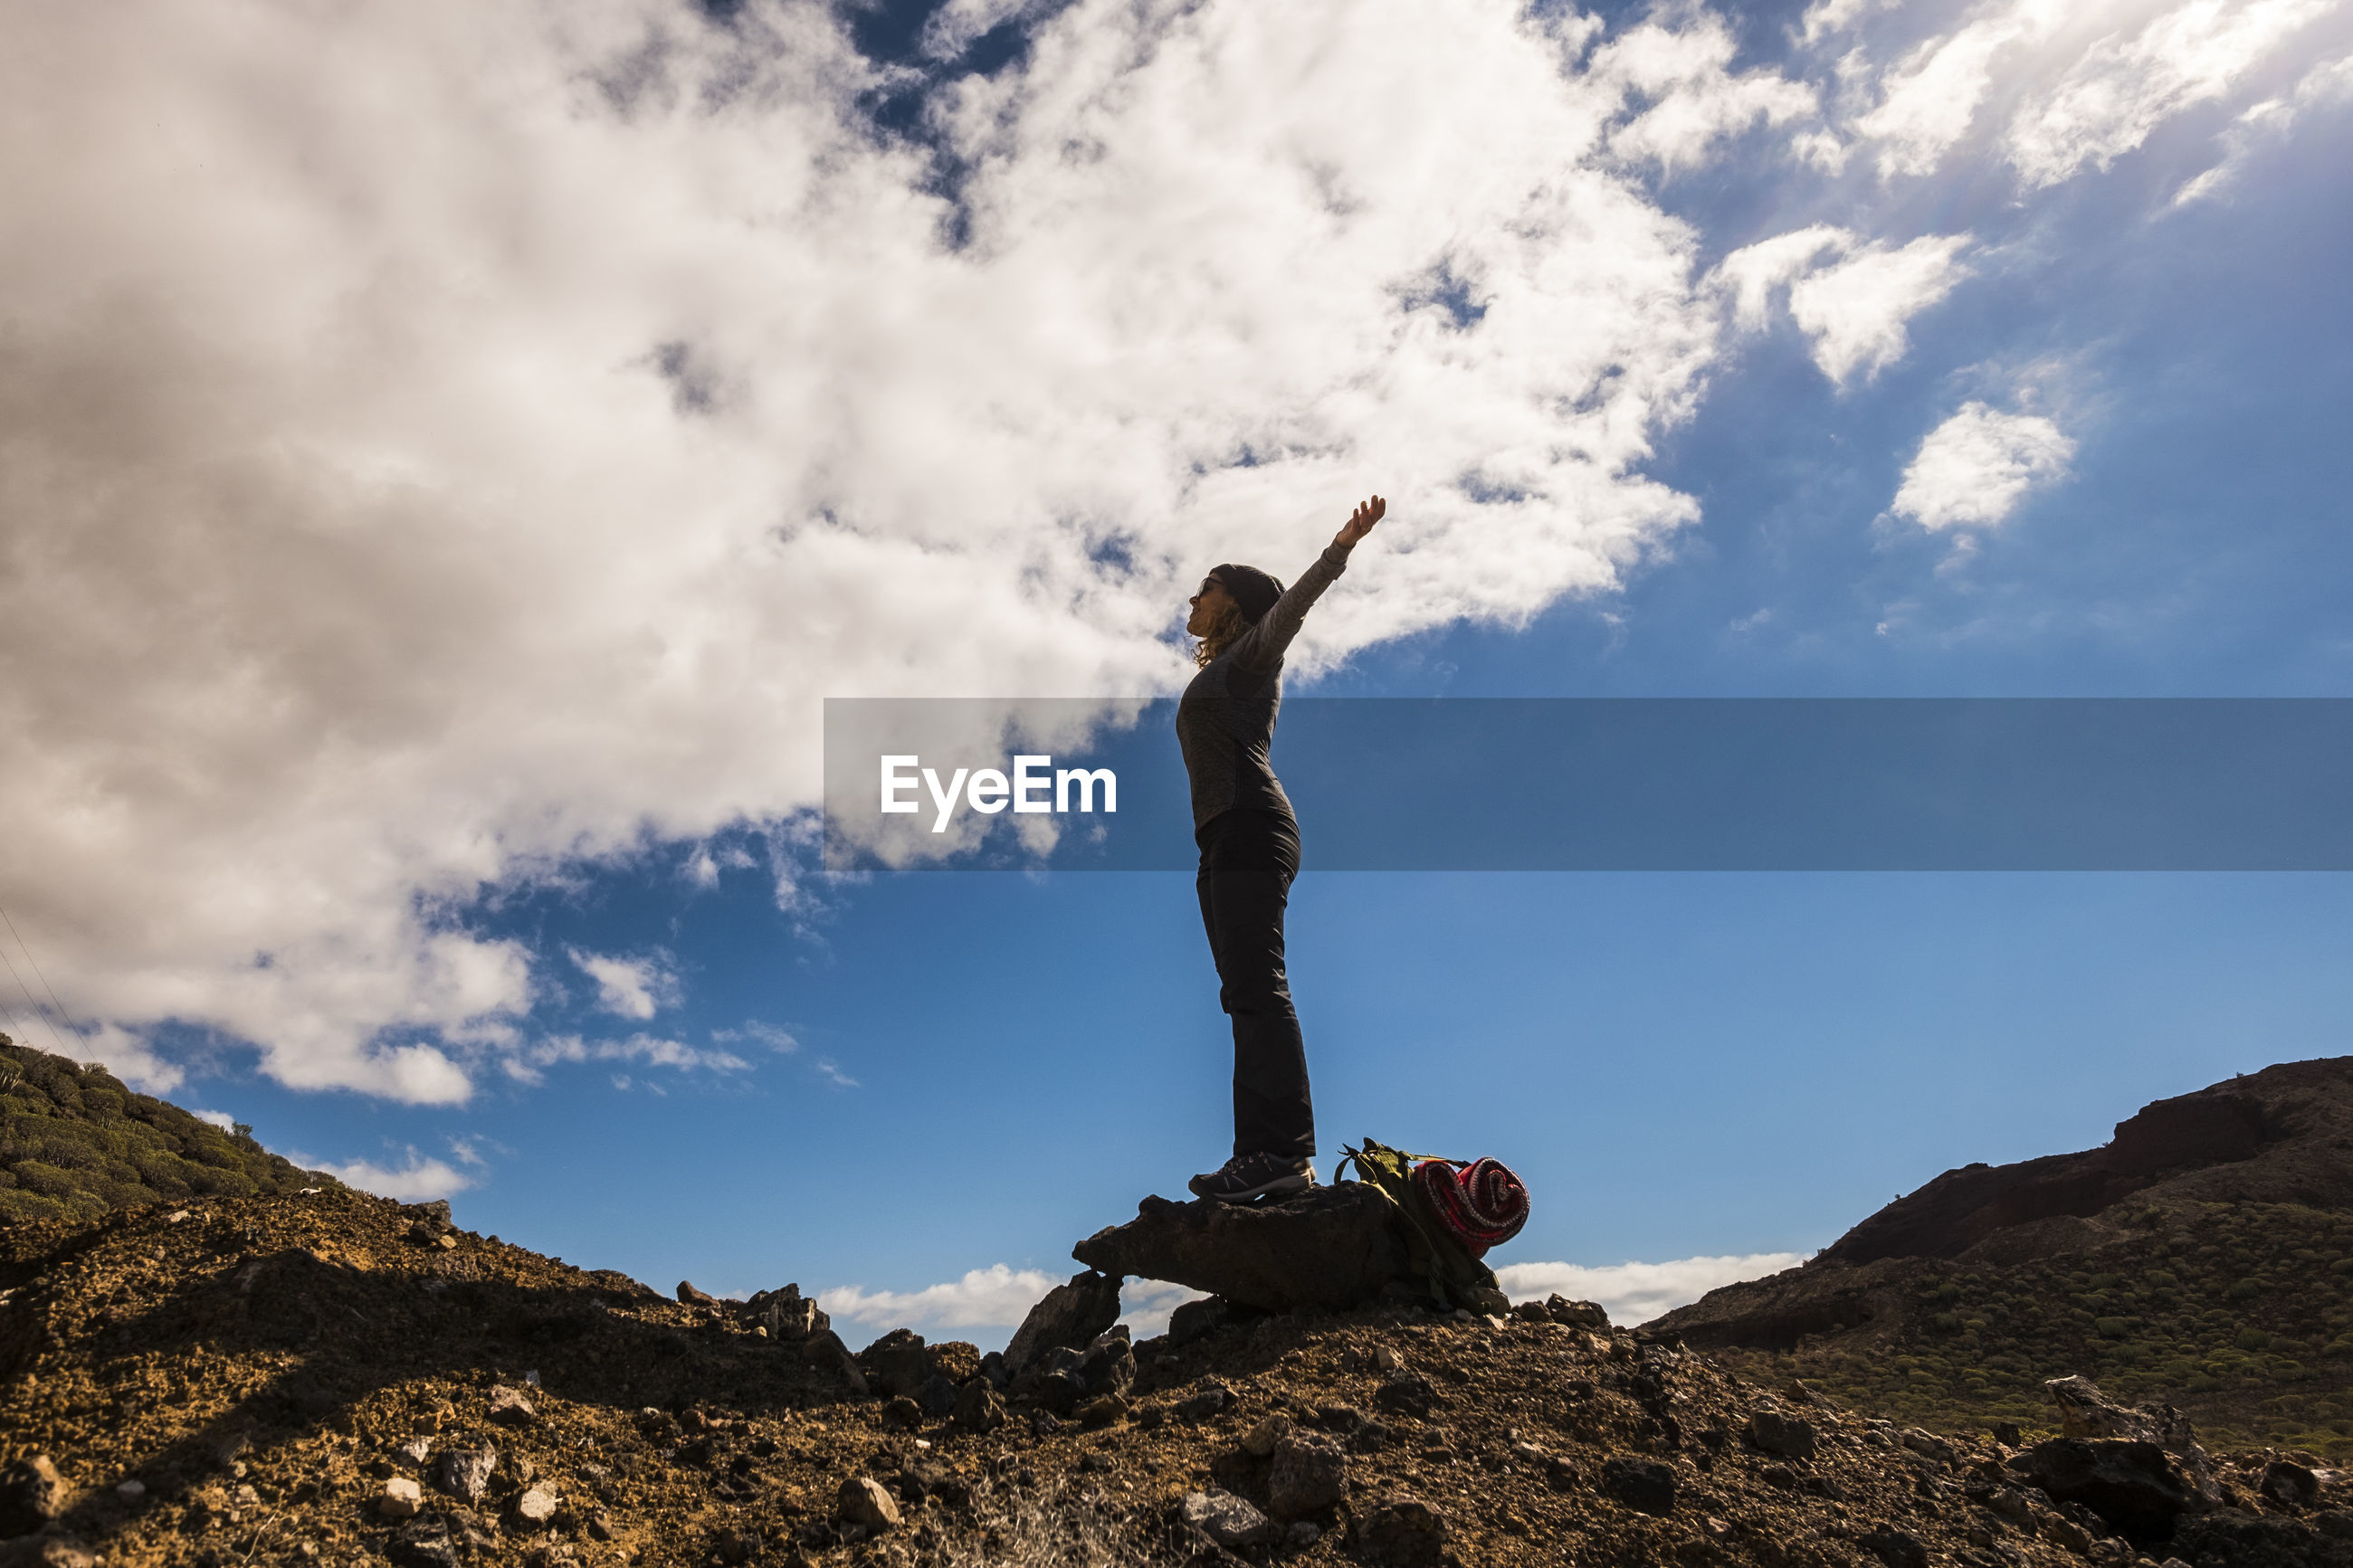 Low angle view of woman standing with arms outstretched on land against sky